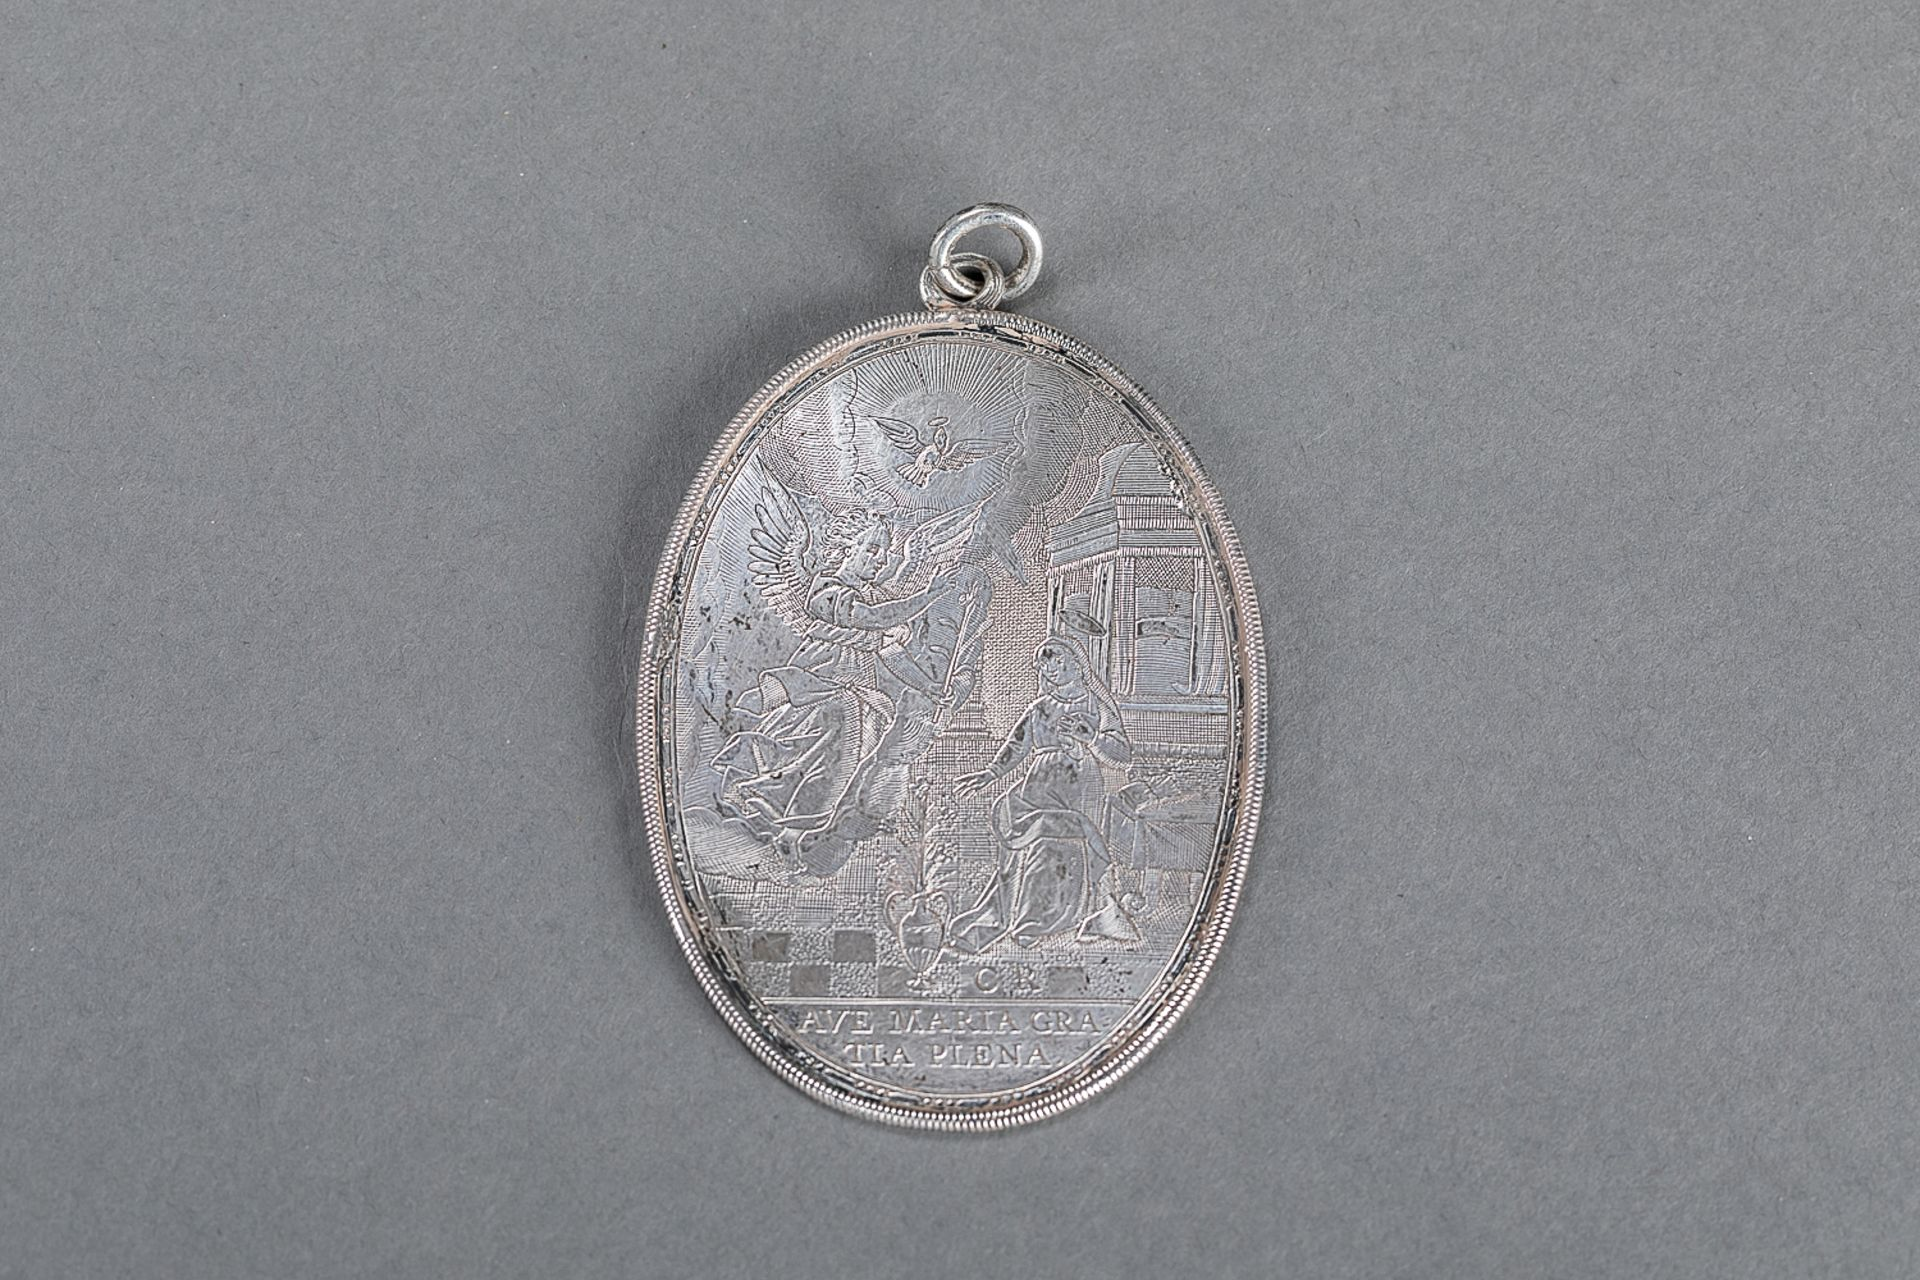 Silver medallion plaquette, 18th Century, C.R. master sign; 6x8.3cm - Image 3 of 3